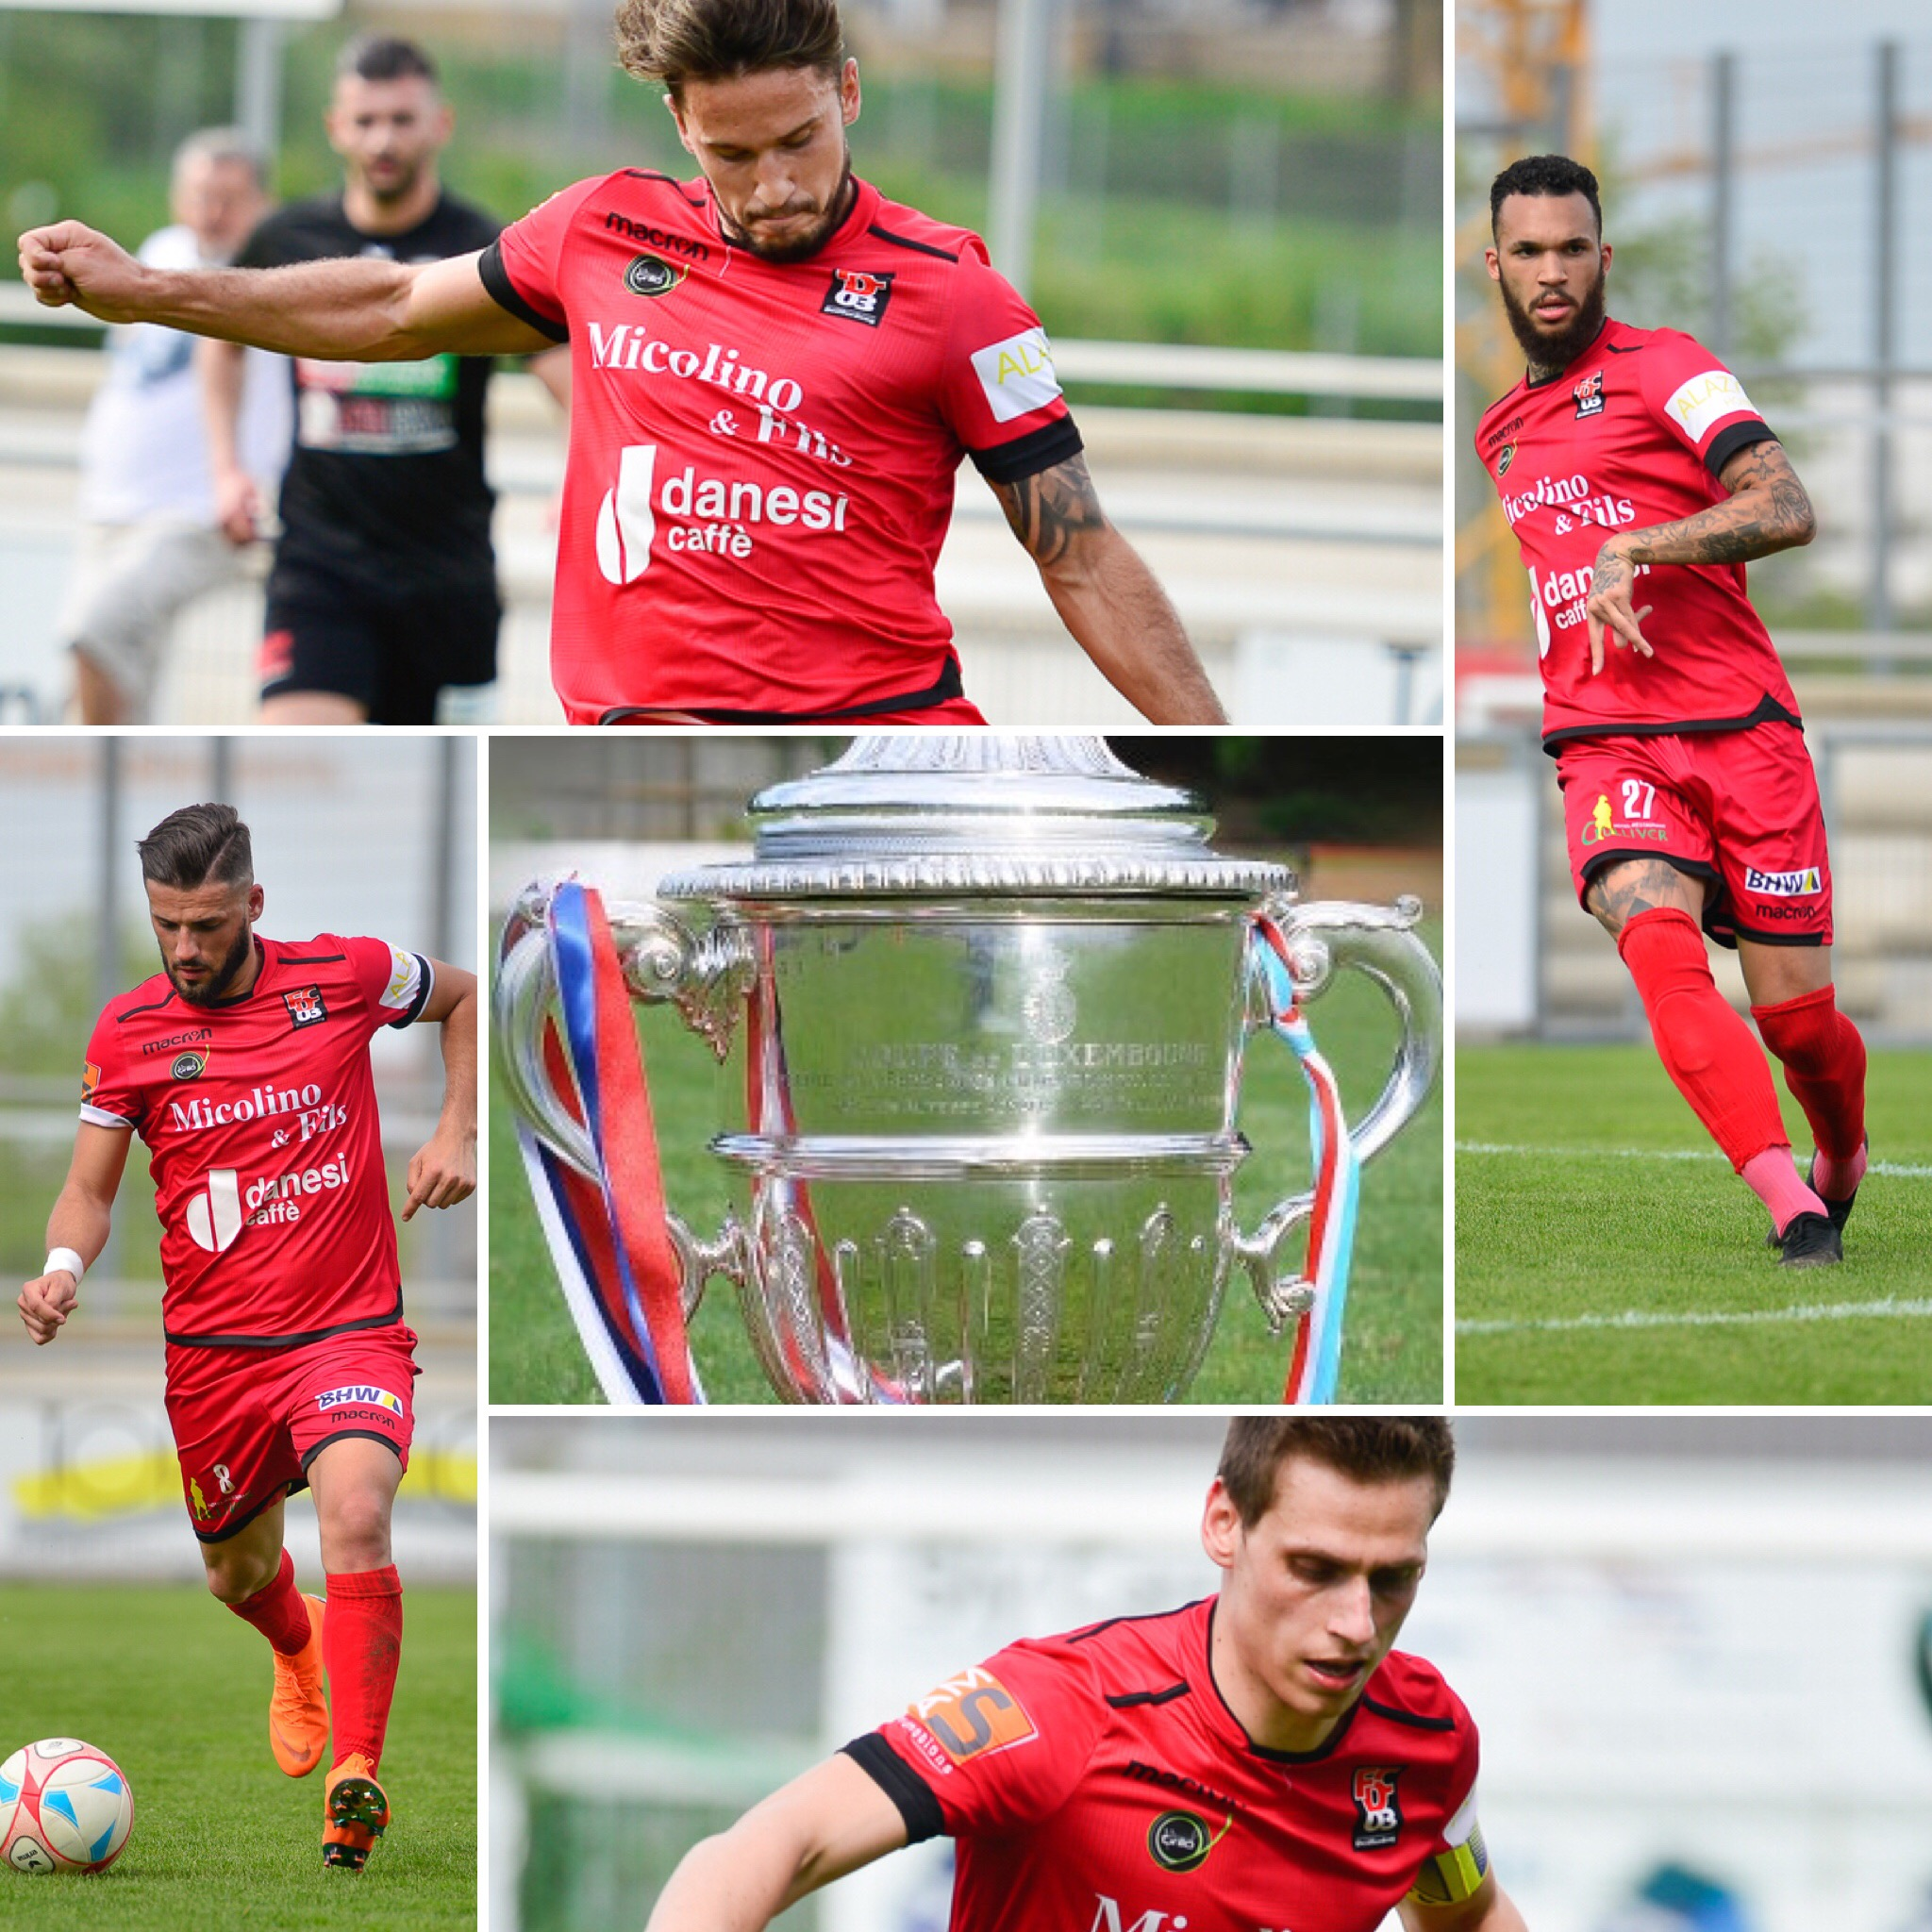 Coupe de Luxembourg 1/2 Finale